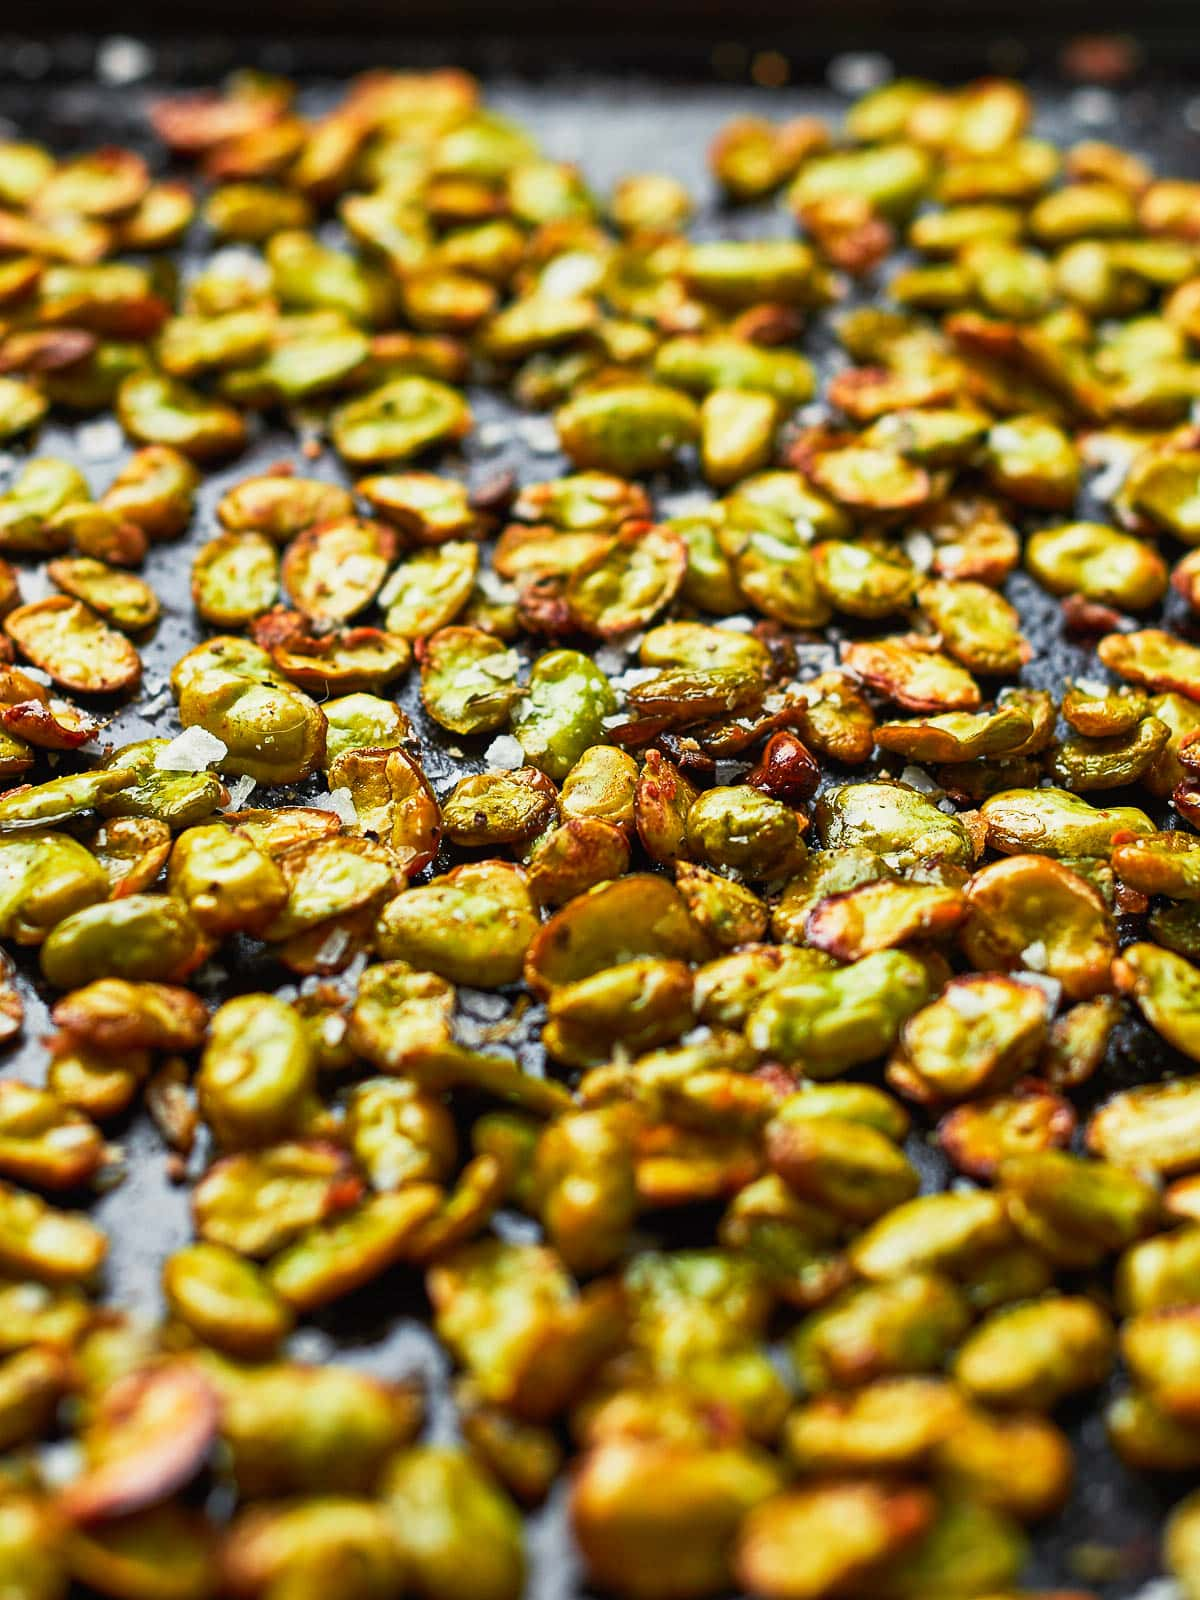 Roasted broad beans on a baking tray